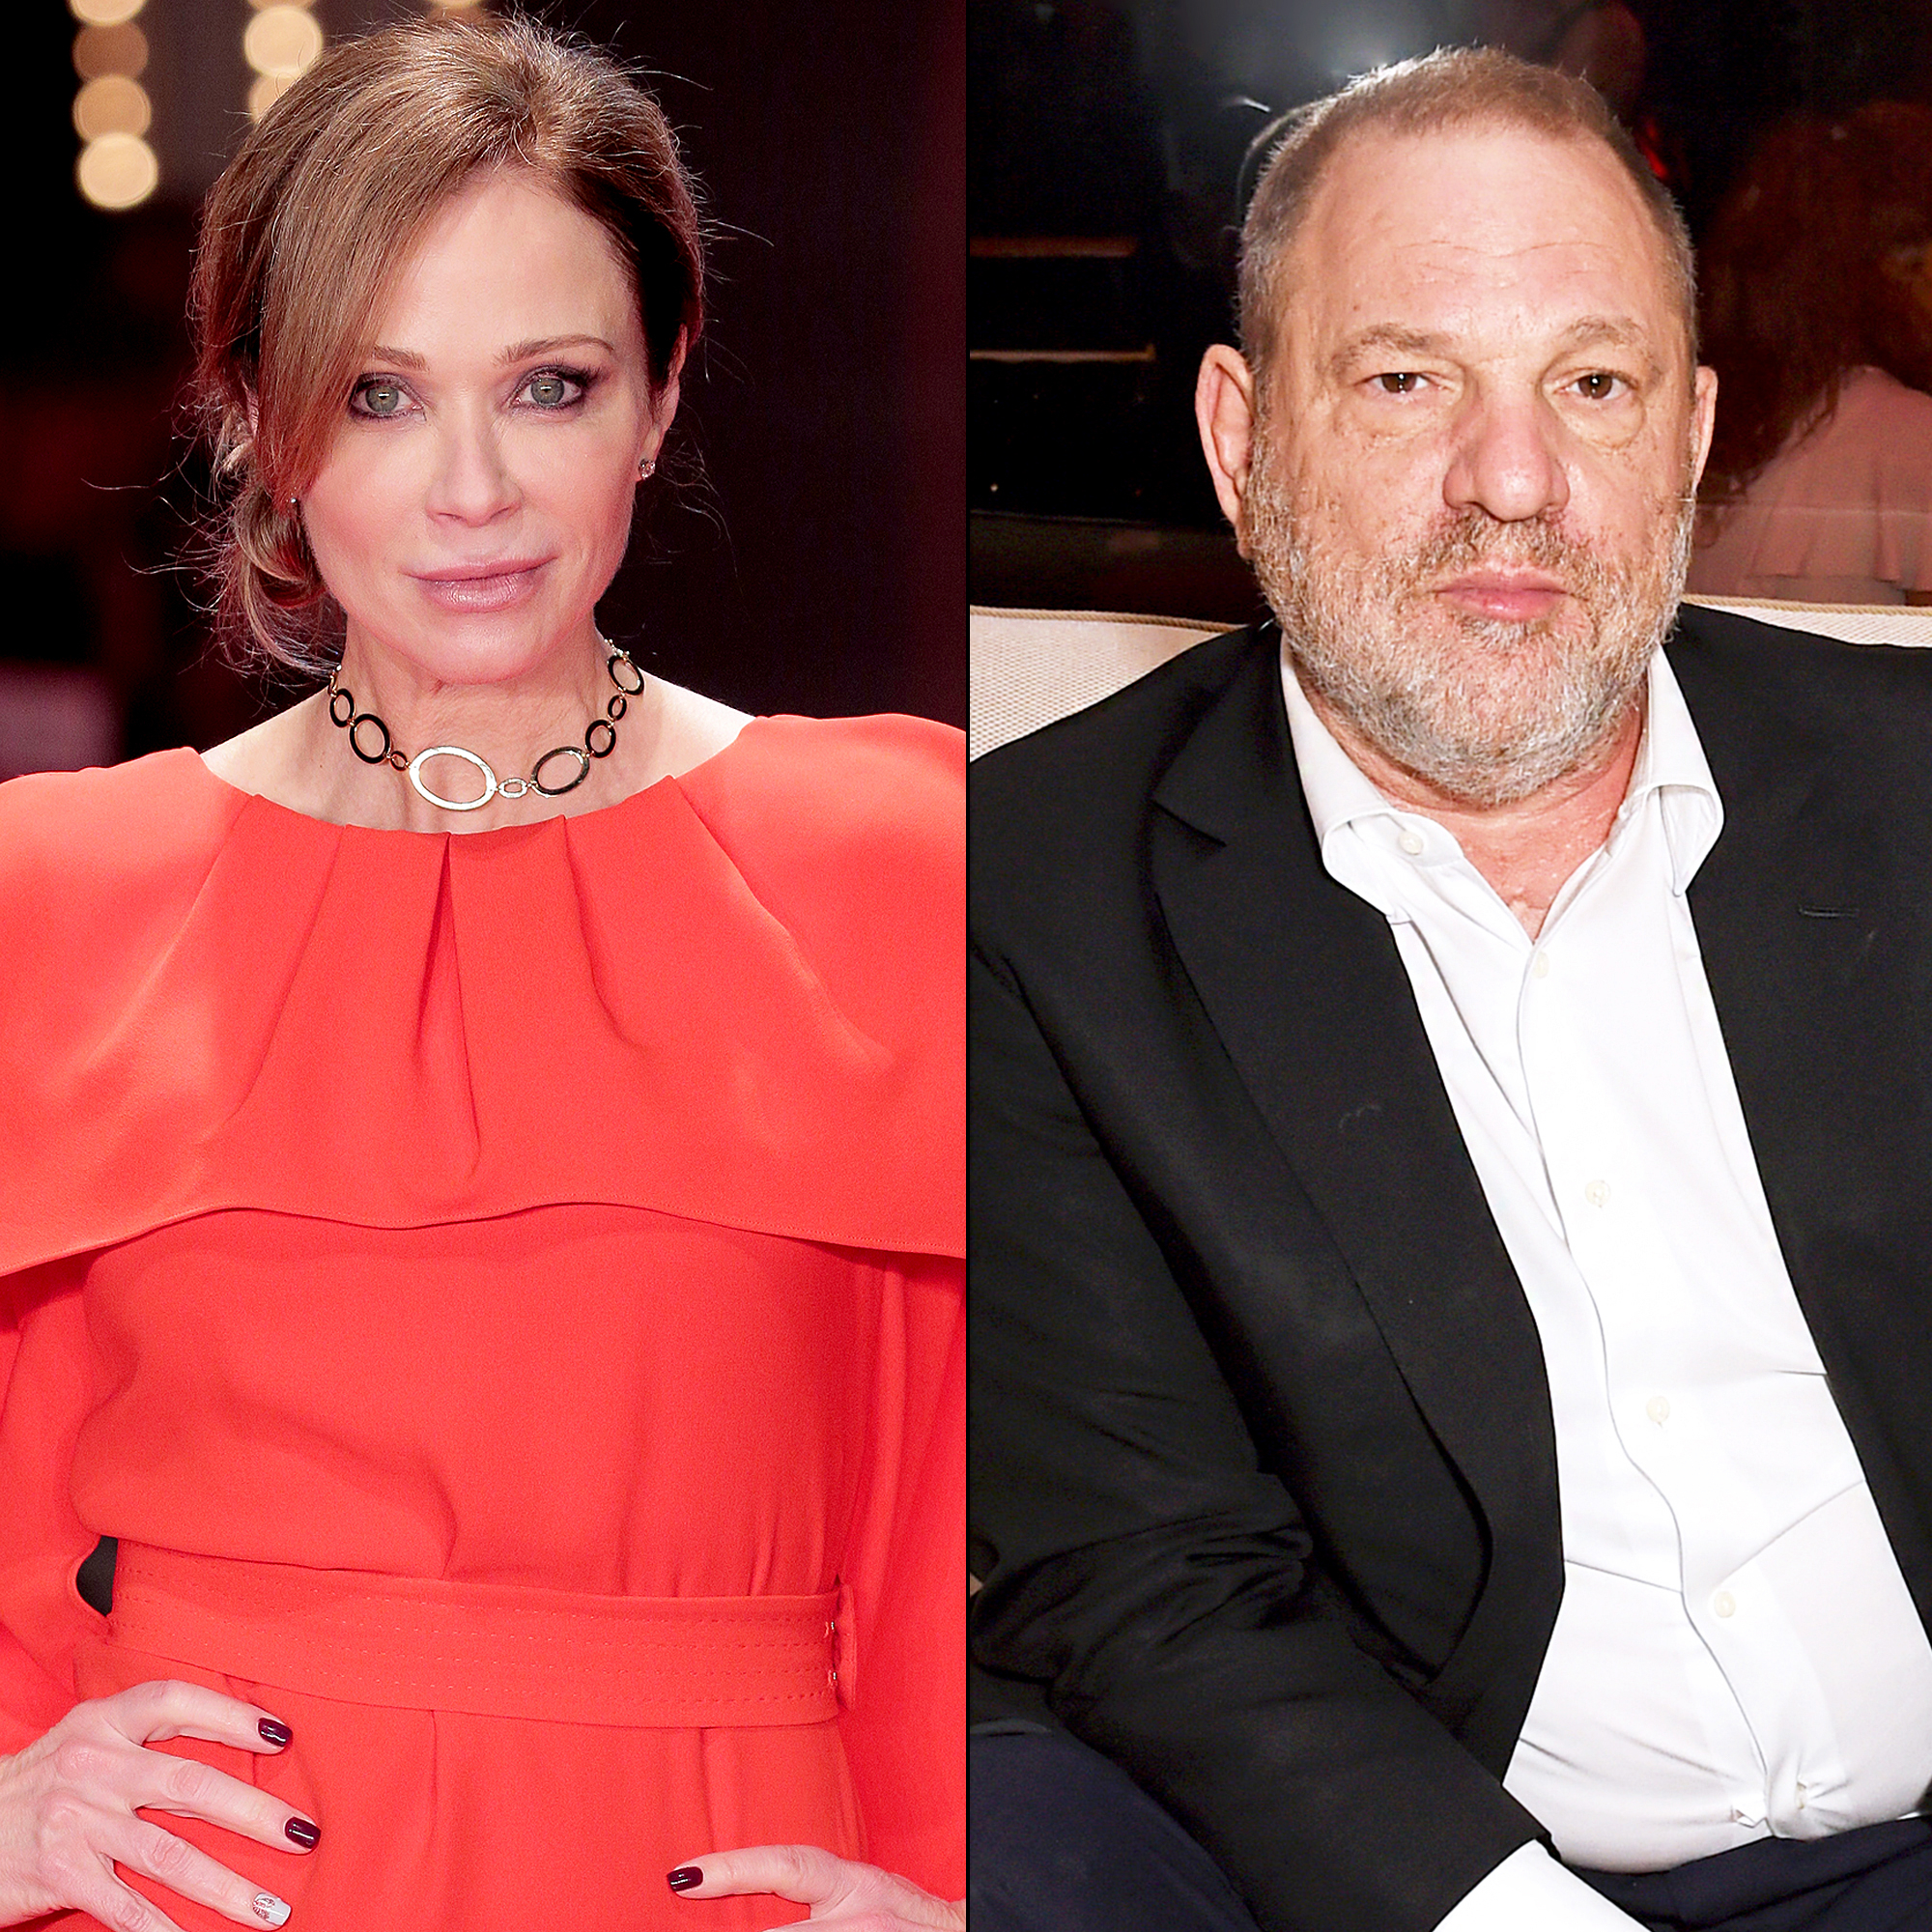 Lauren Holly and Harvey Weinstein